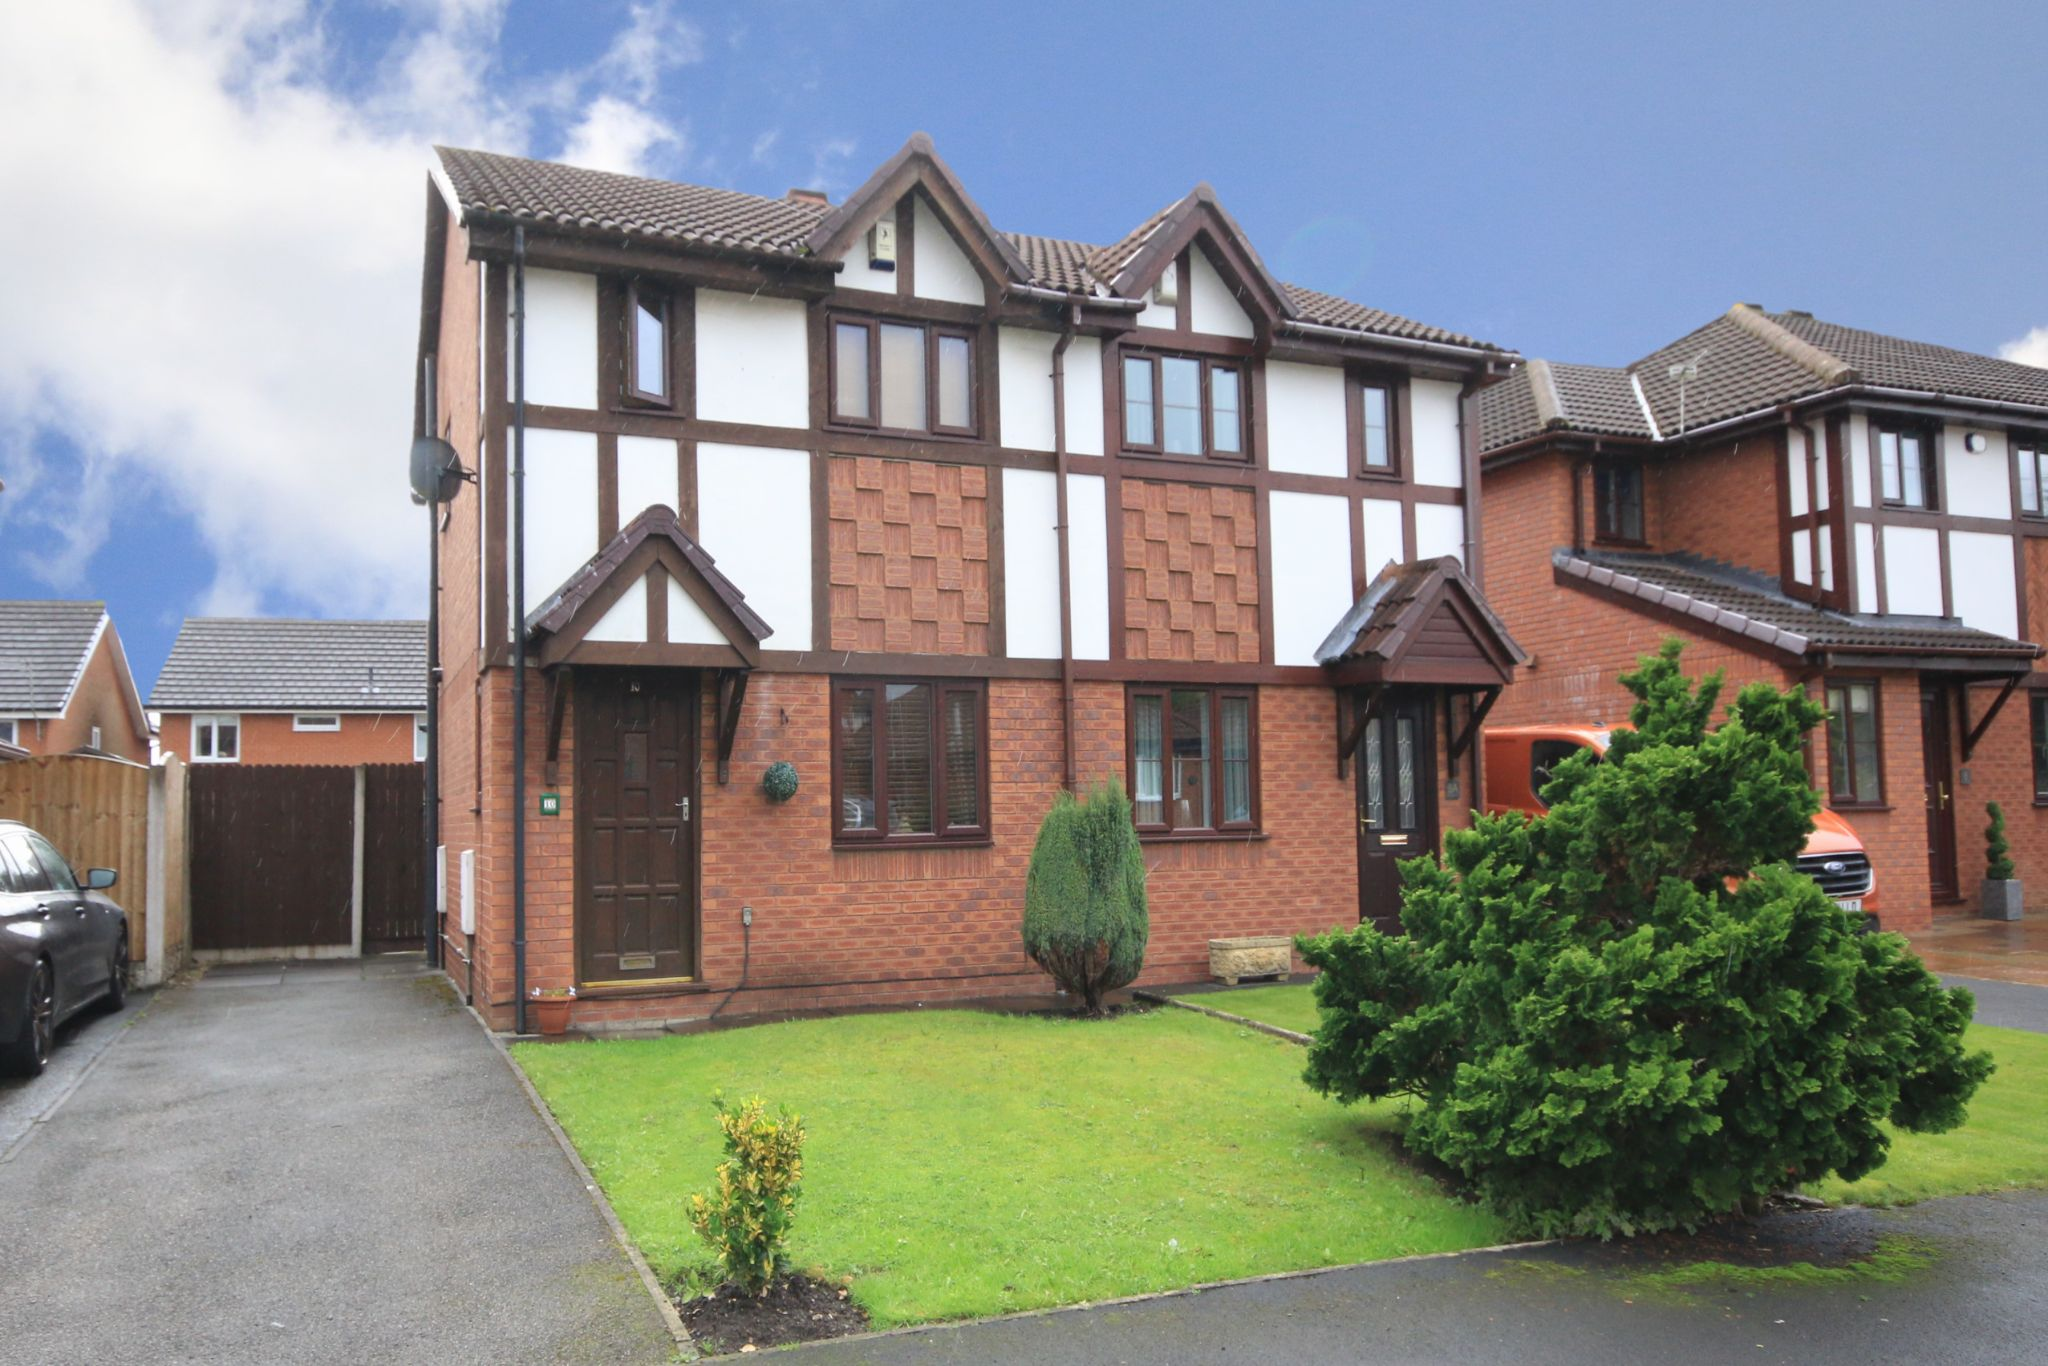 2 bedroom semi-detached house For Sale in Wigan - Photograph 3.